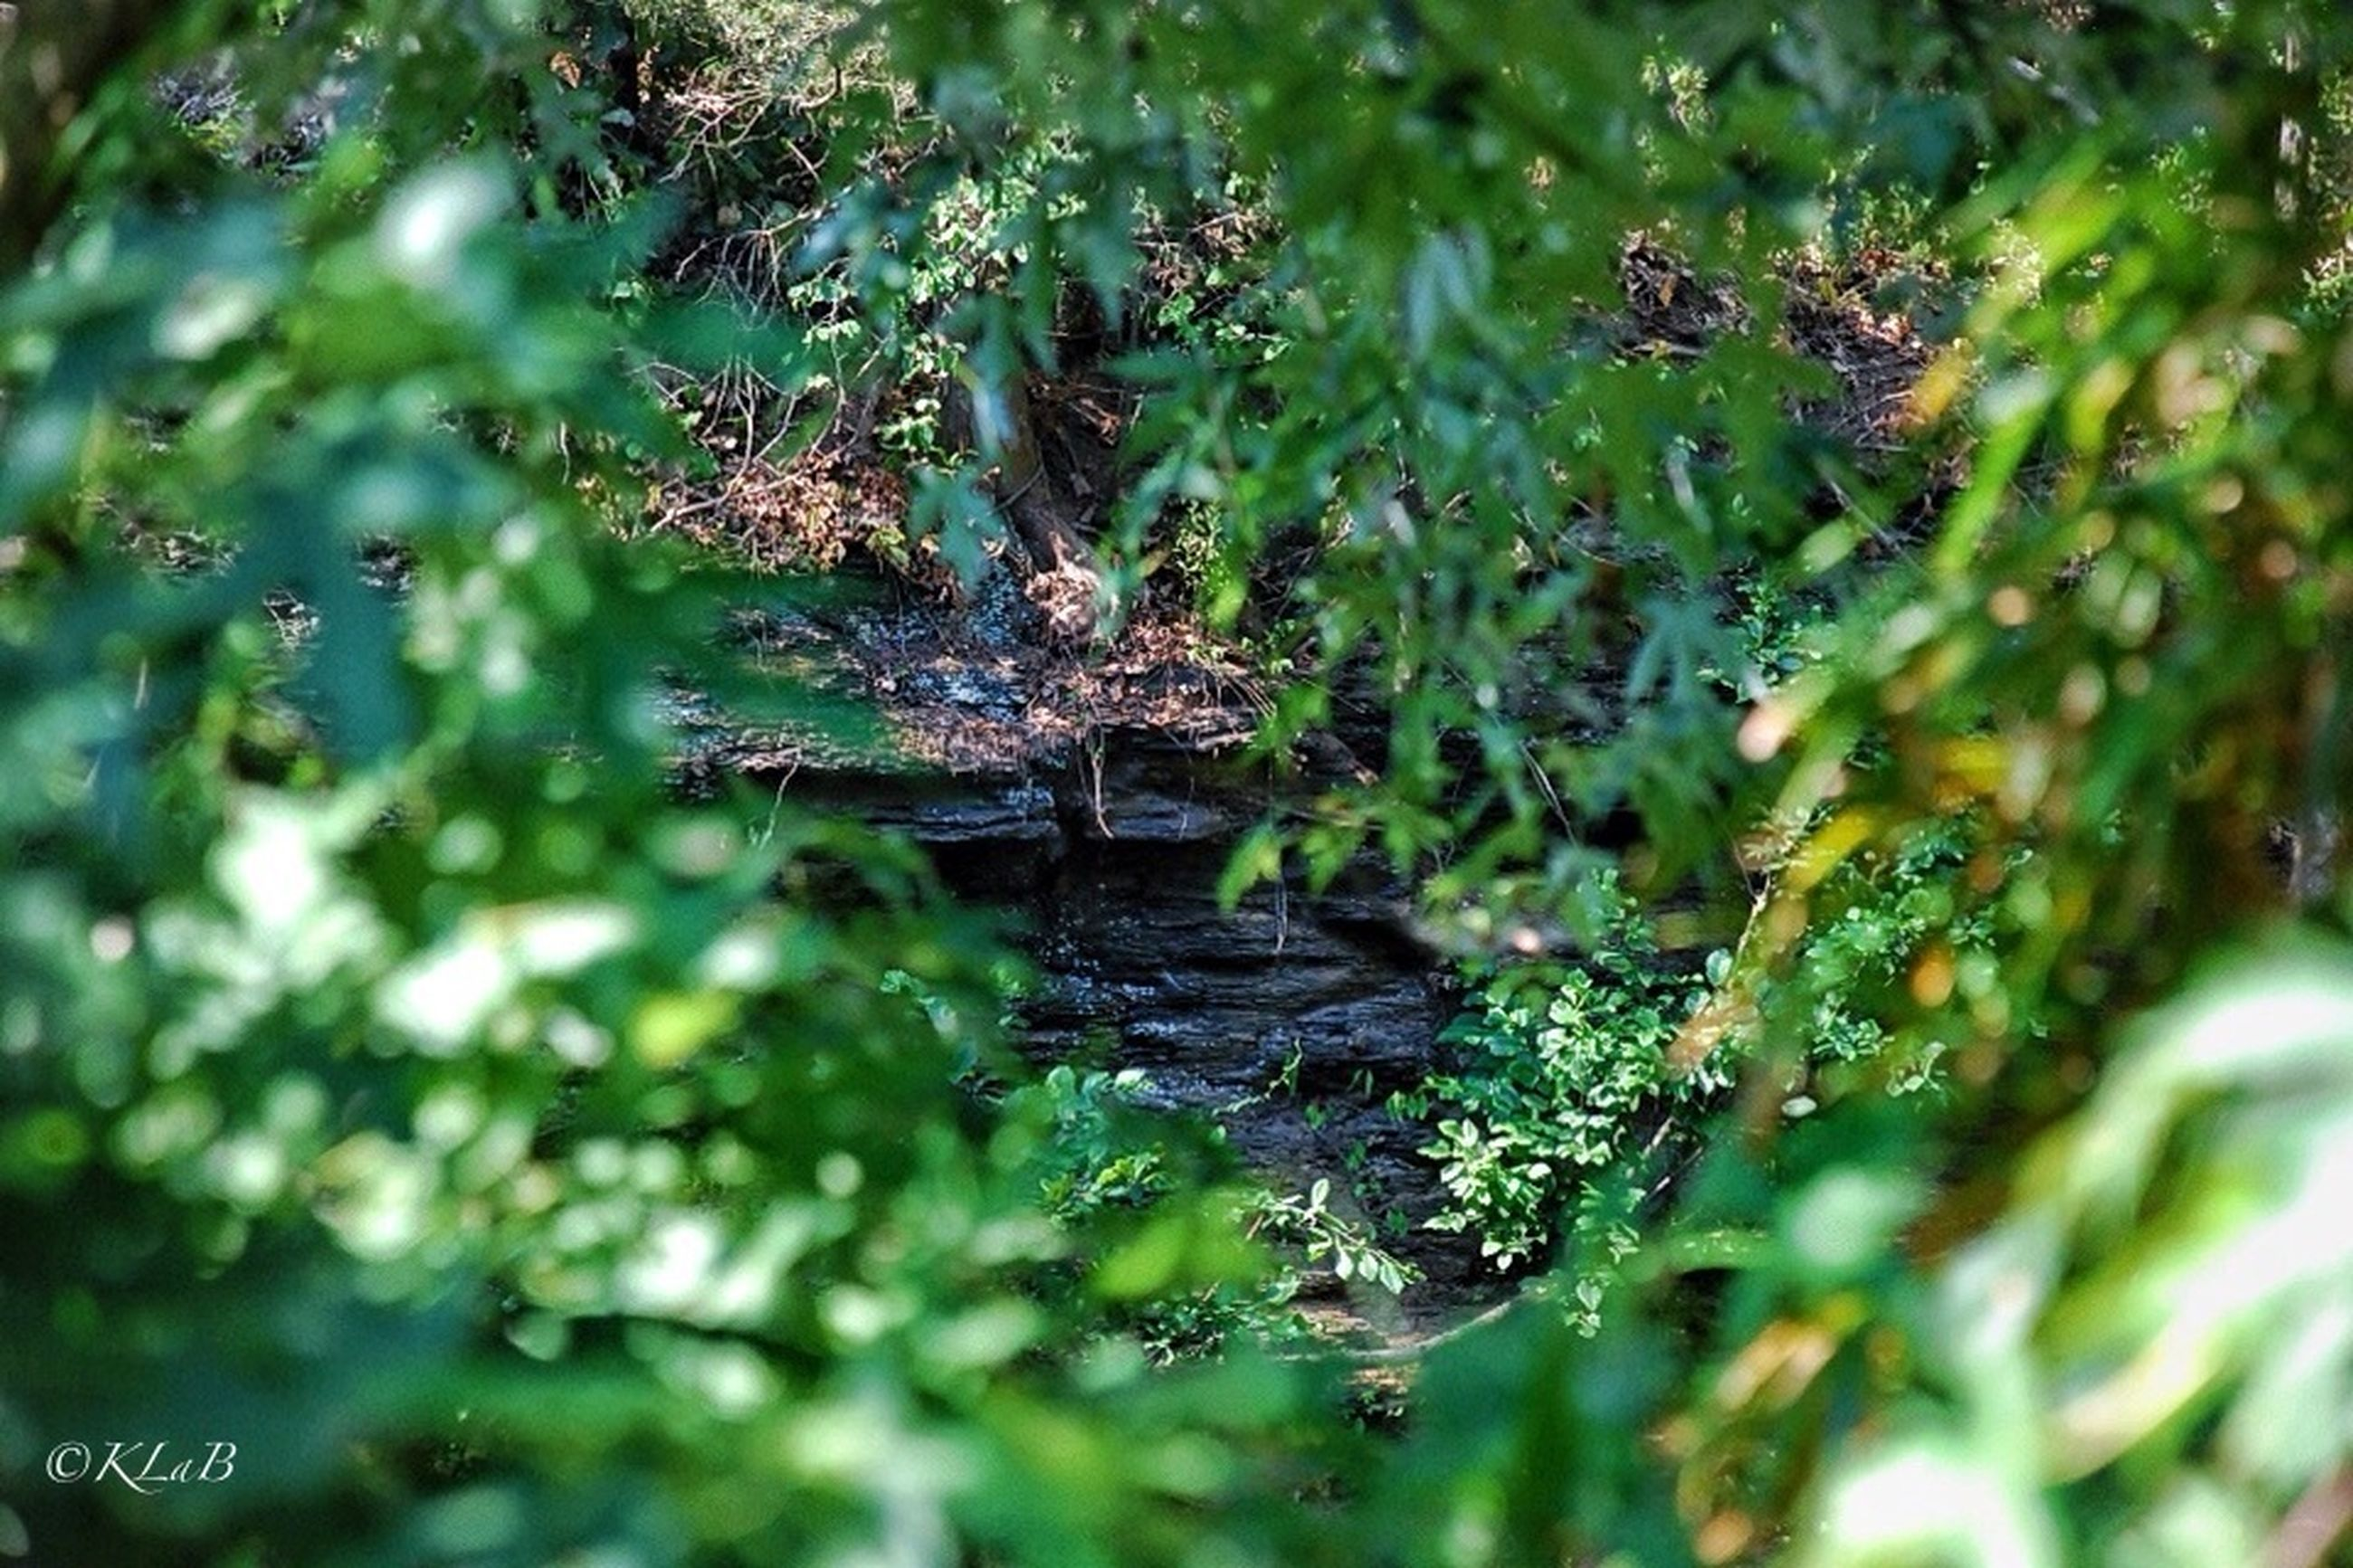 water, growth, leaf, plant, nature, green color, tree, reflection, selective focus, spider web, tranquility, wet, branch, close-up, focus on foreground, beauty in nature, day, outdoors, no people, drop